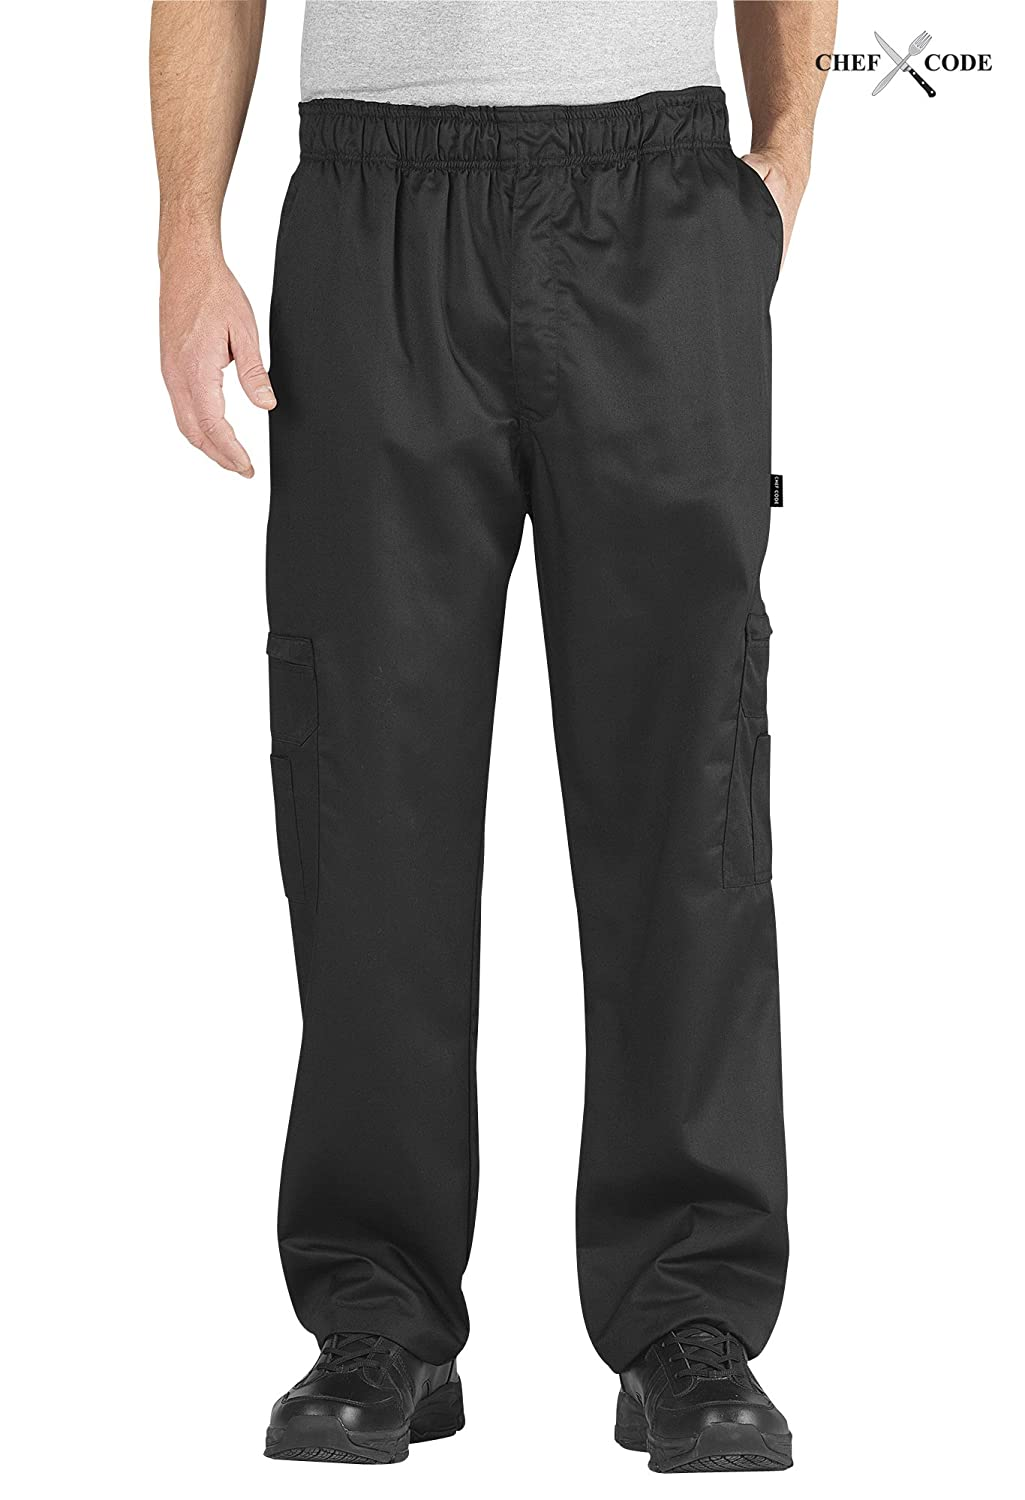 Chef Code Chef Cargo Pants with Elastic Waist and Drawstring CC201-202